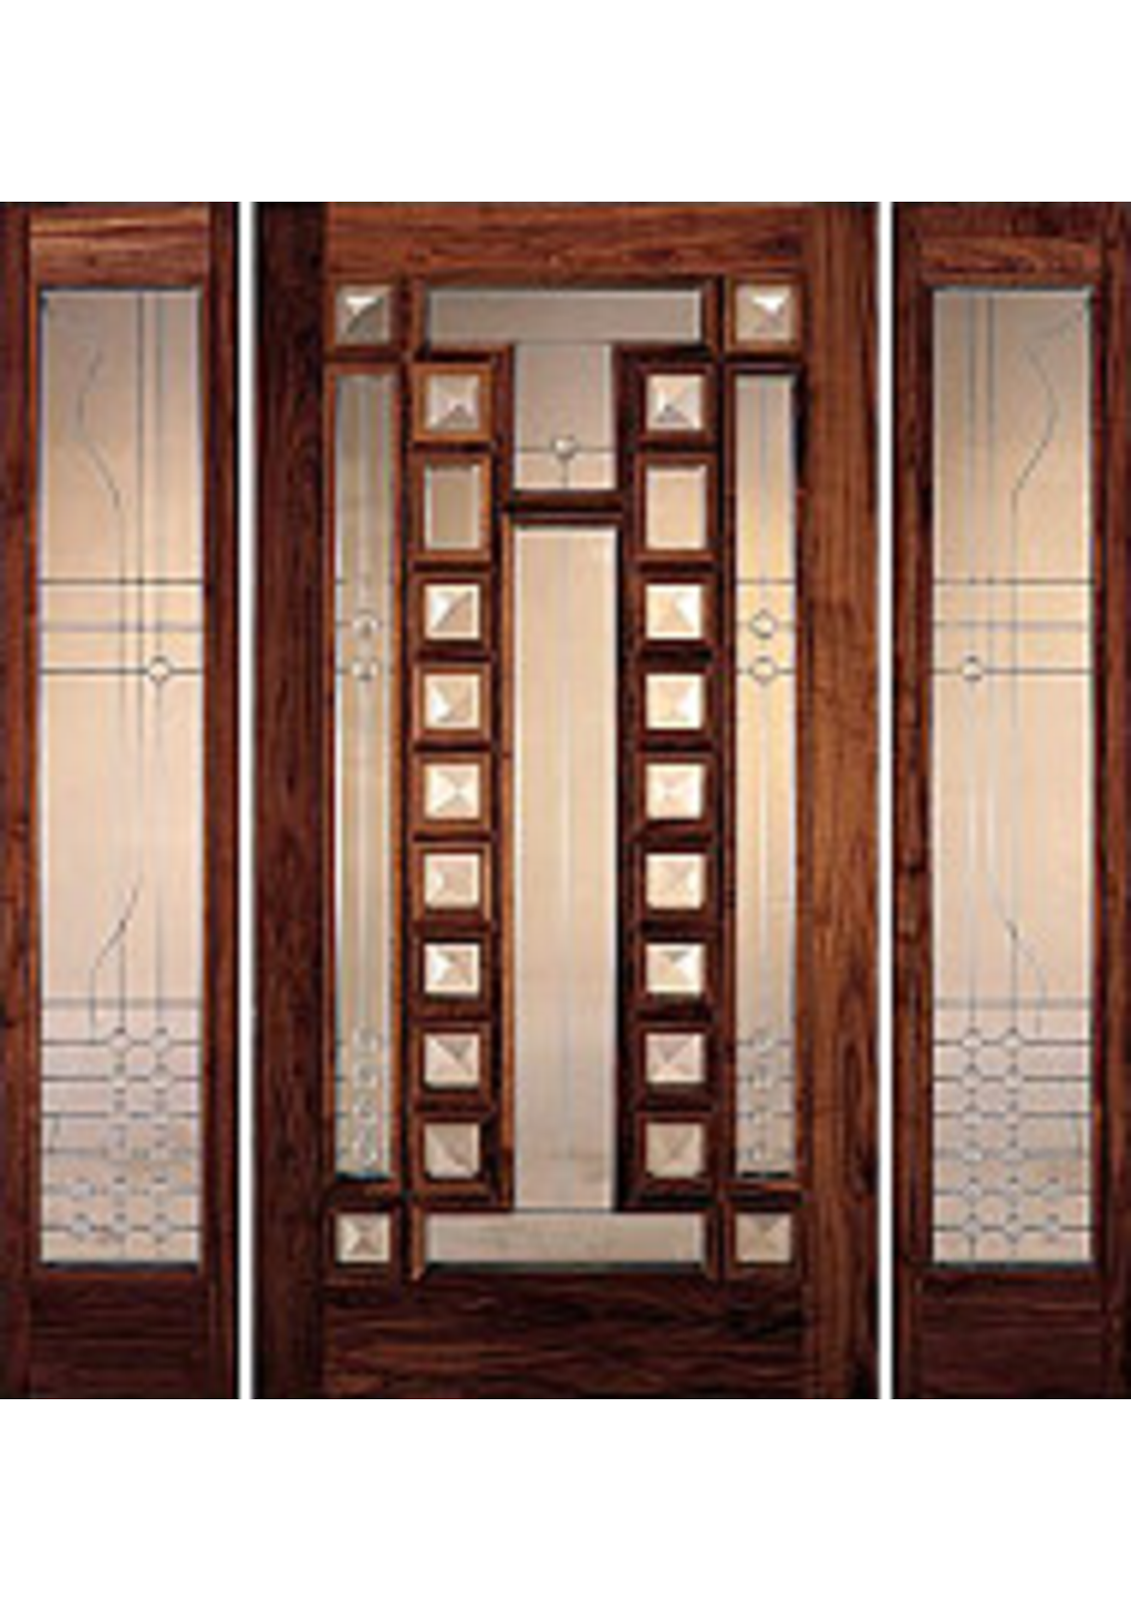 Foundation dezin decor doors design for Designer door design